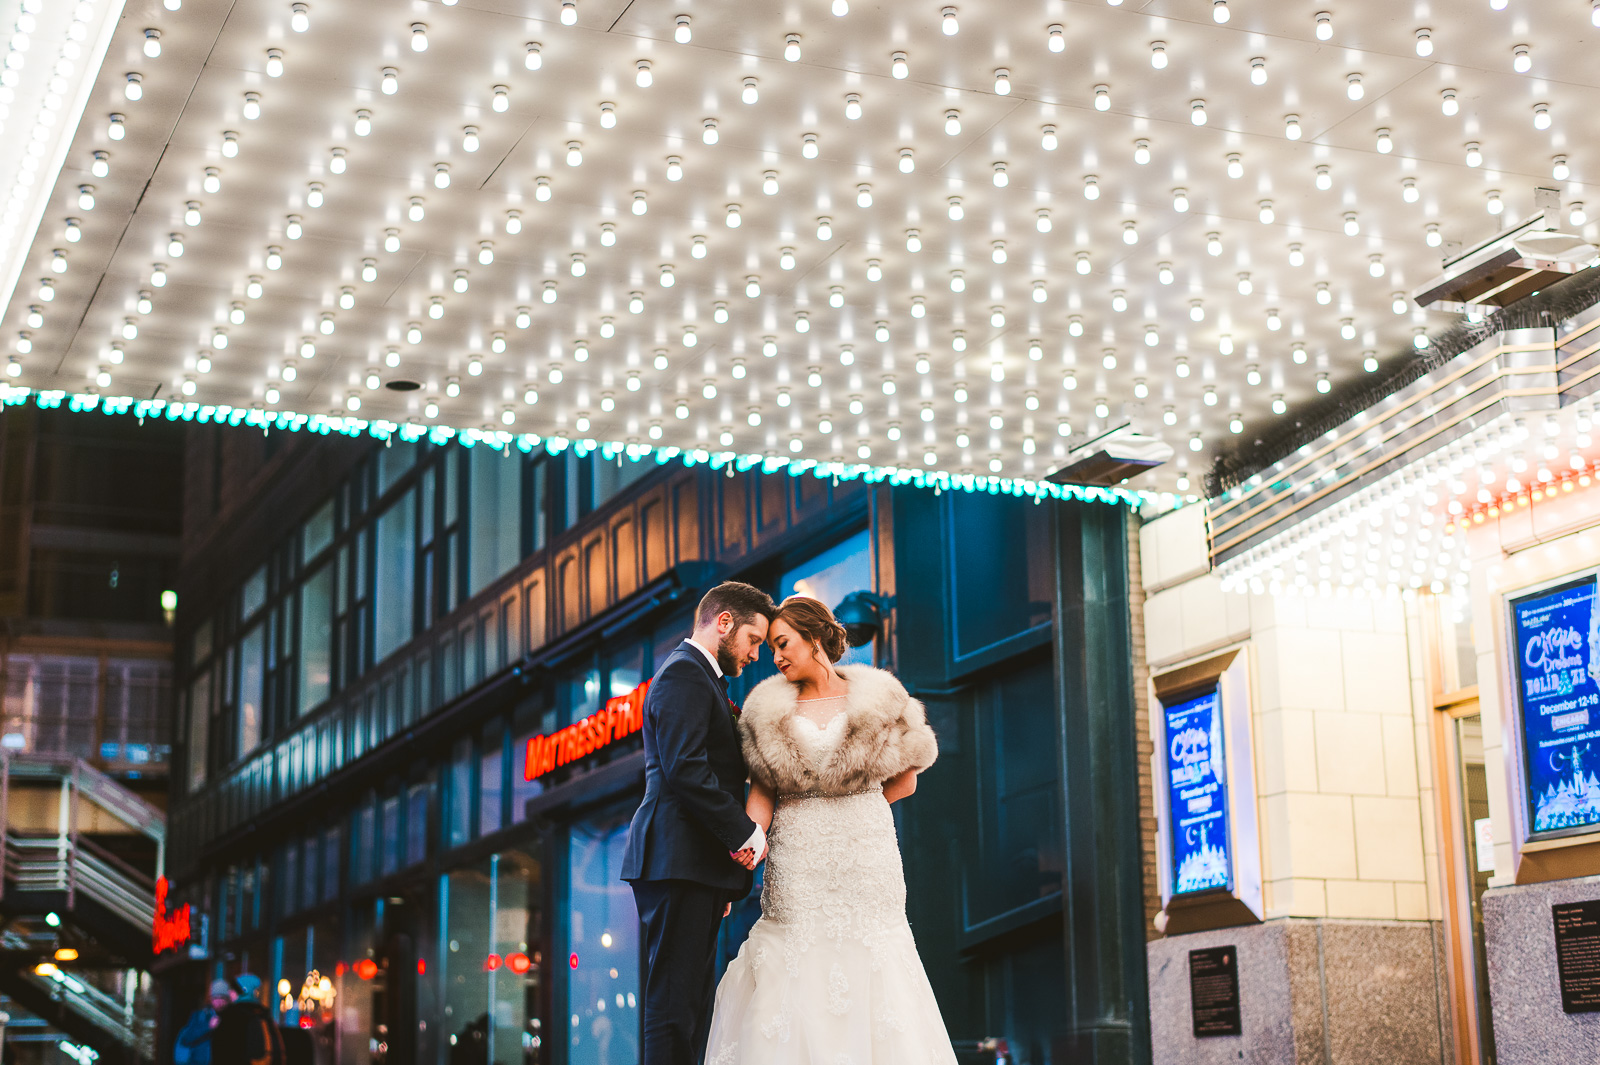 146 chicago wedding photographer best portraits during weddings review - 2018 in Review // My Favorite Chicago Wedding Photography Portraits